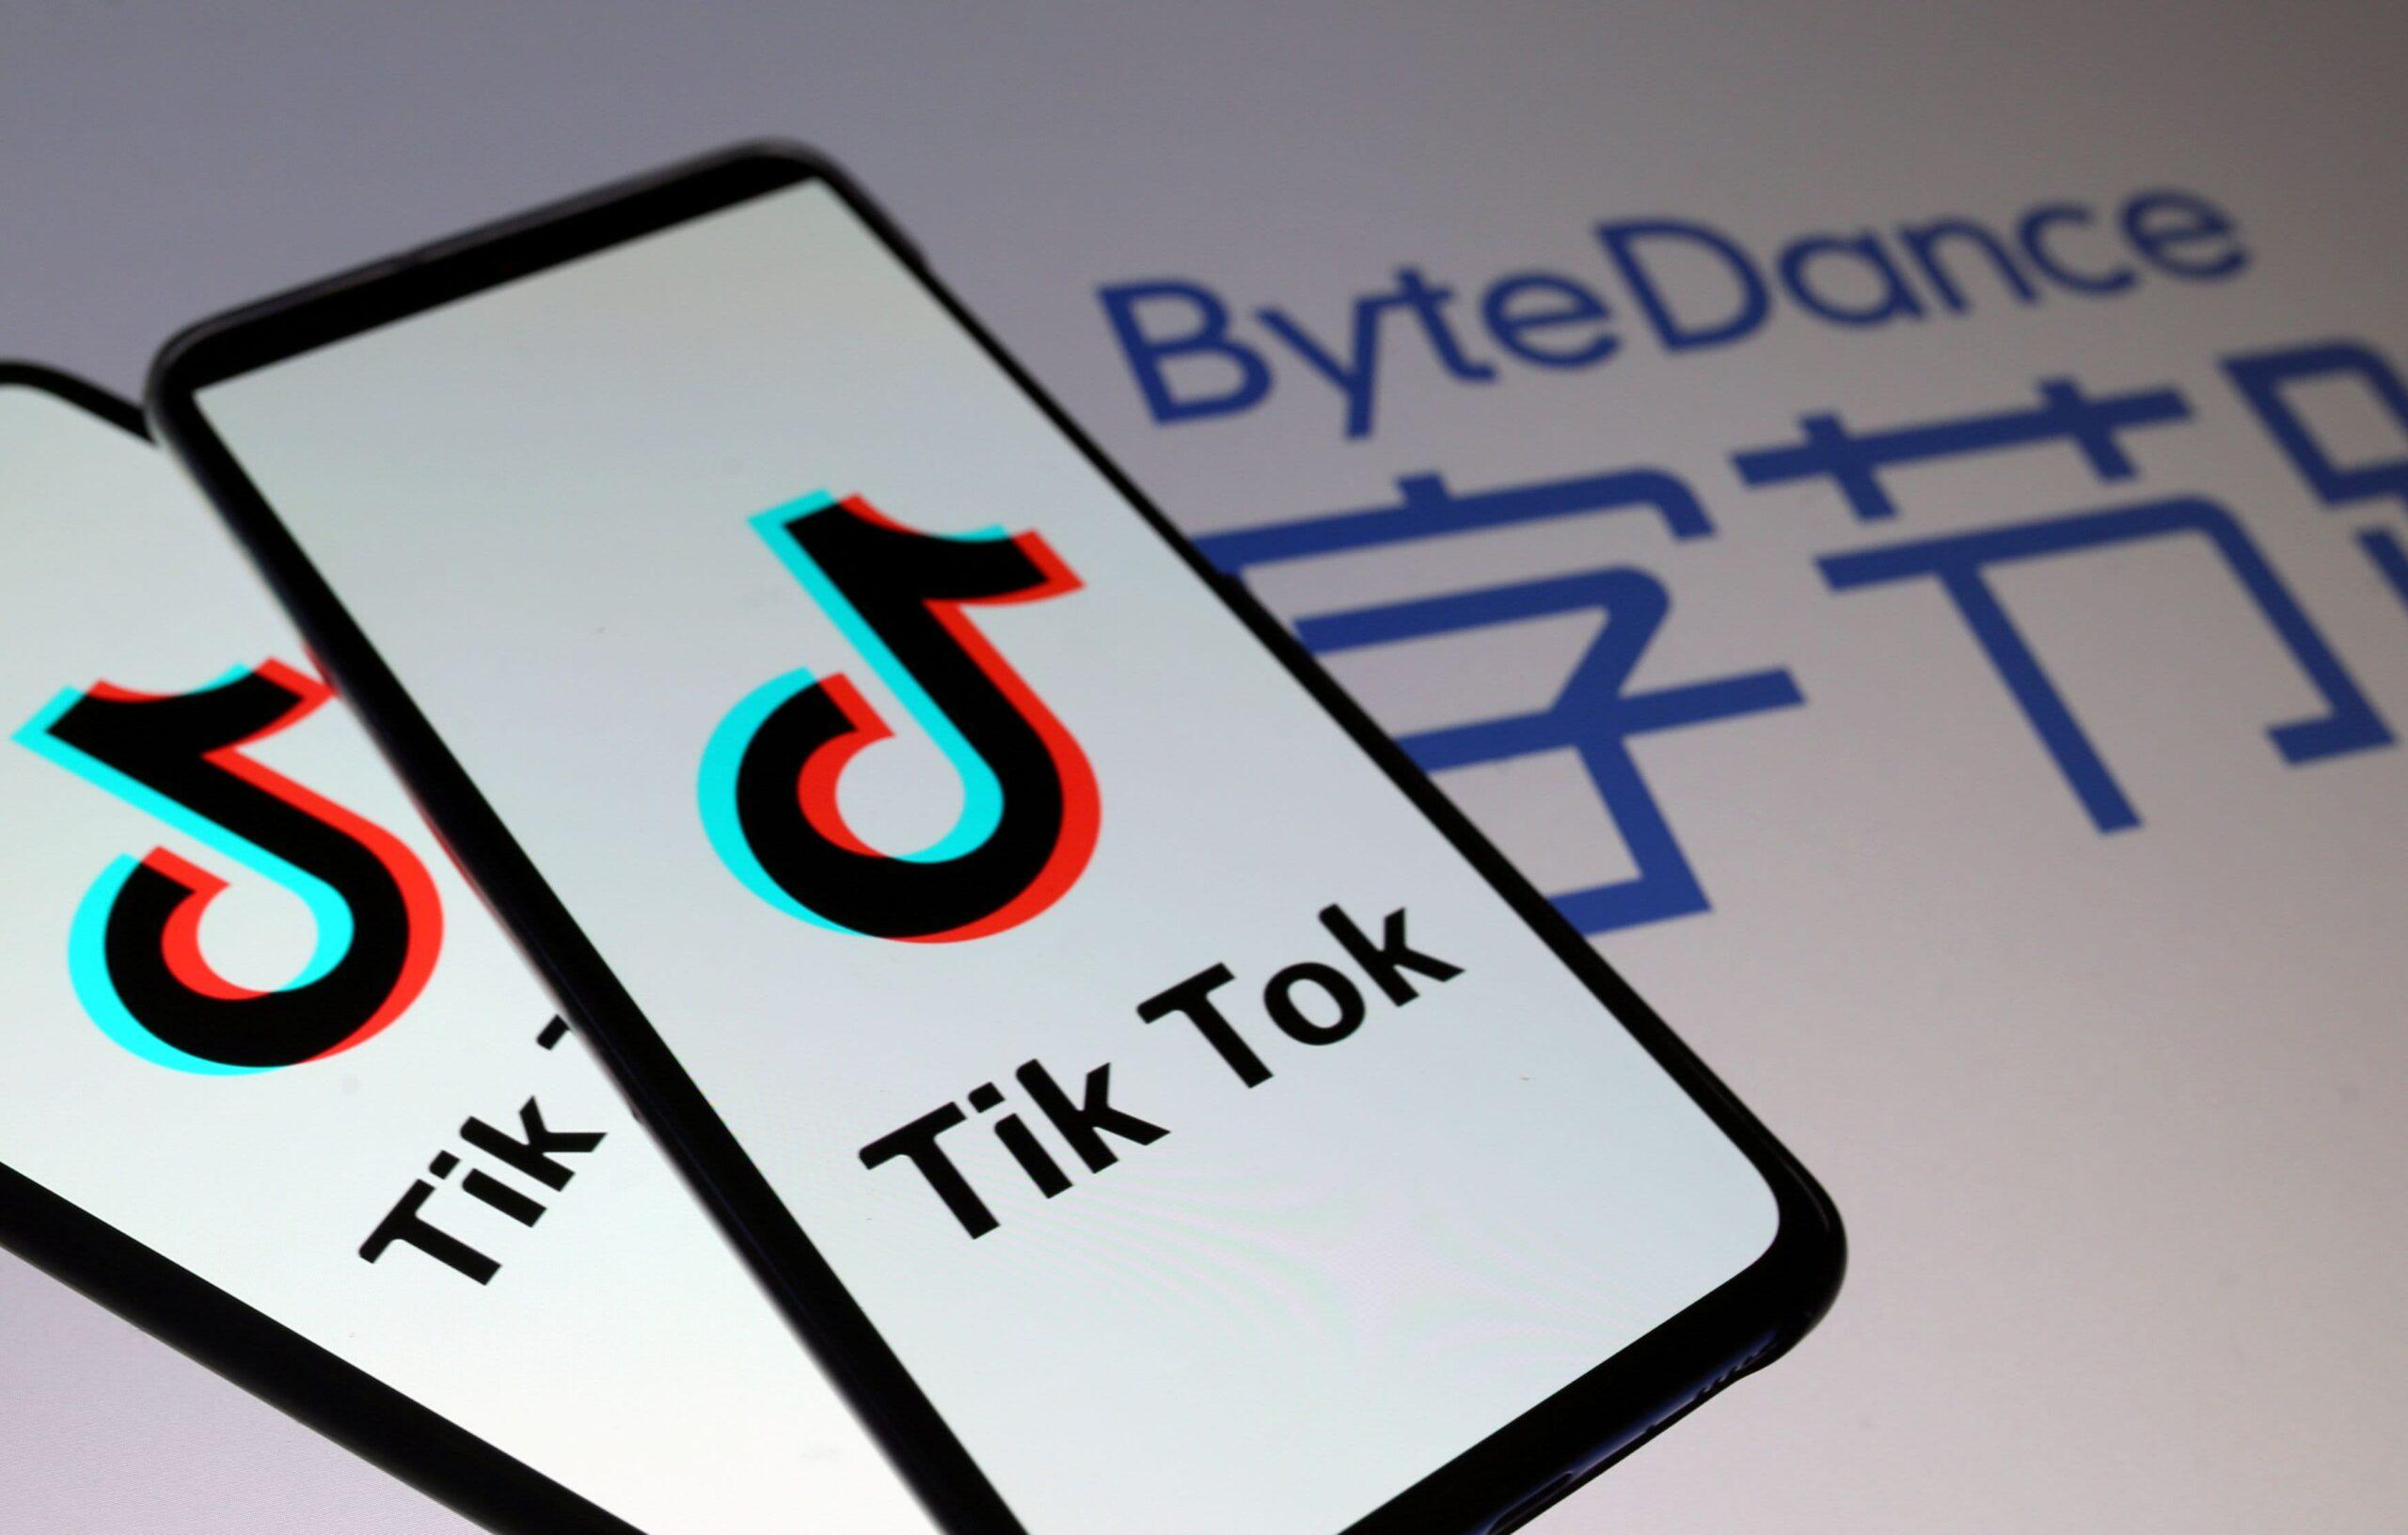 ByteDancehas reportedly been given another week to sell offTikTok'sU.S. business